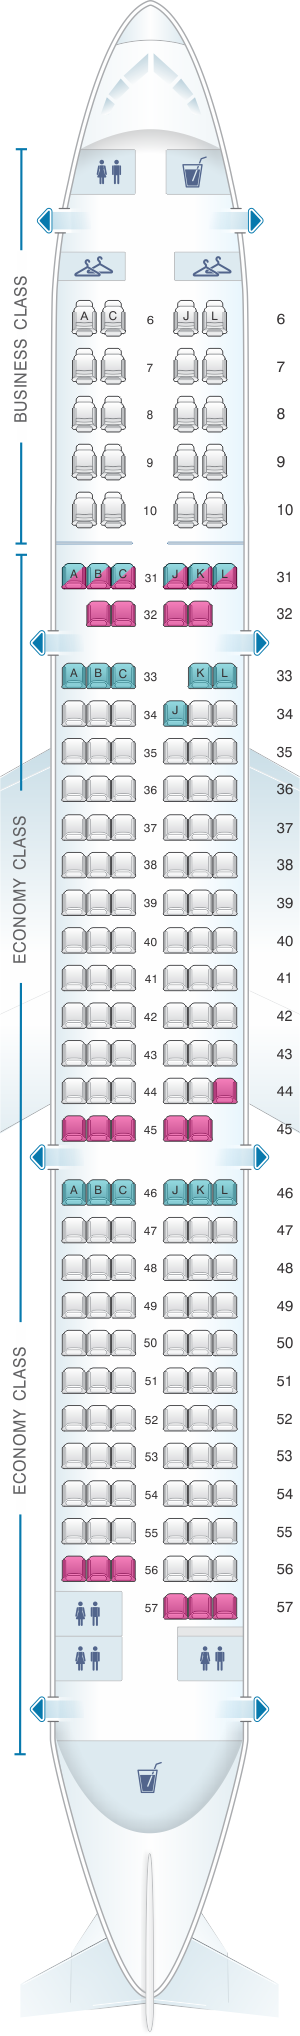 Seat map for China Eastern Airlines Airbus A321 200 175PAX